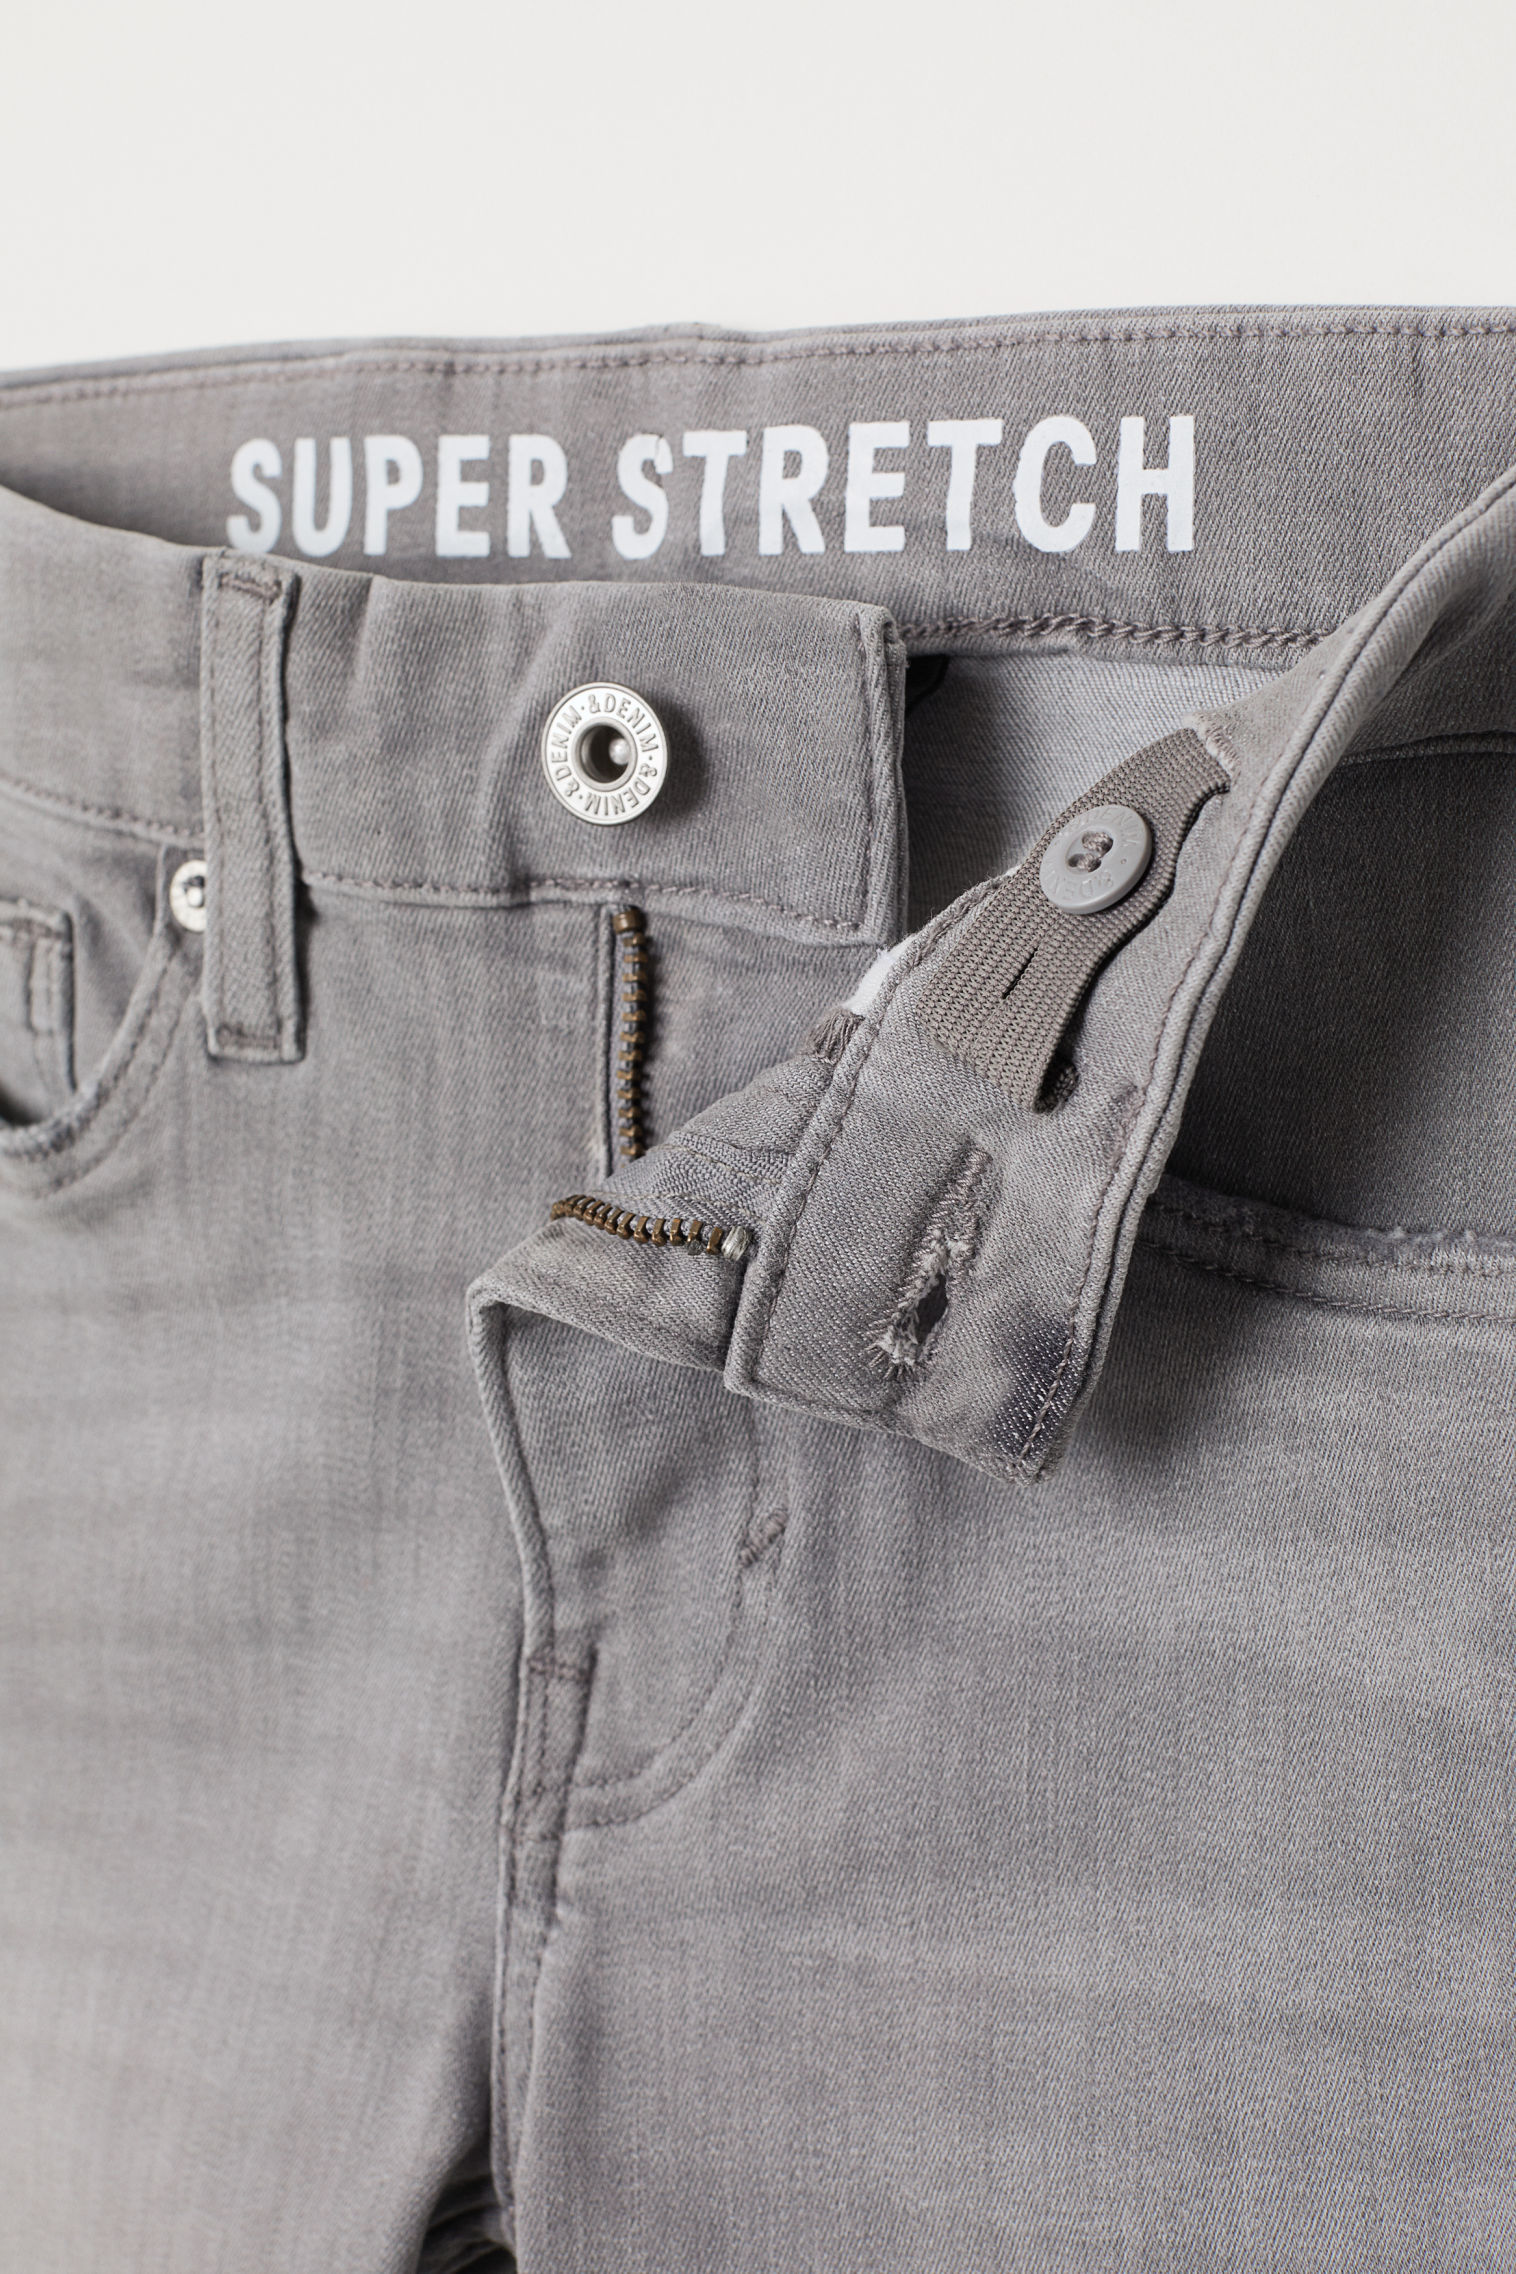 10bd4c8c4bb Superstretch Skinny Fit Jeans  Superstretch Skinny Fit Jeans